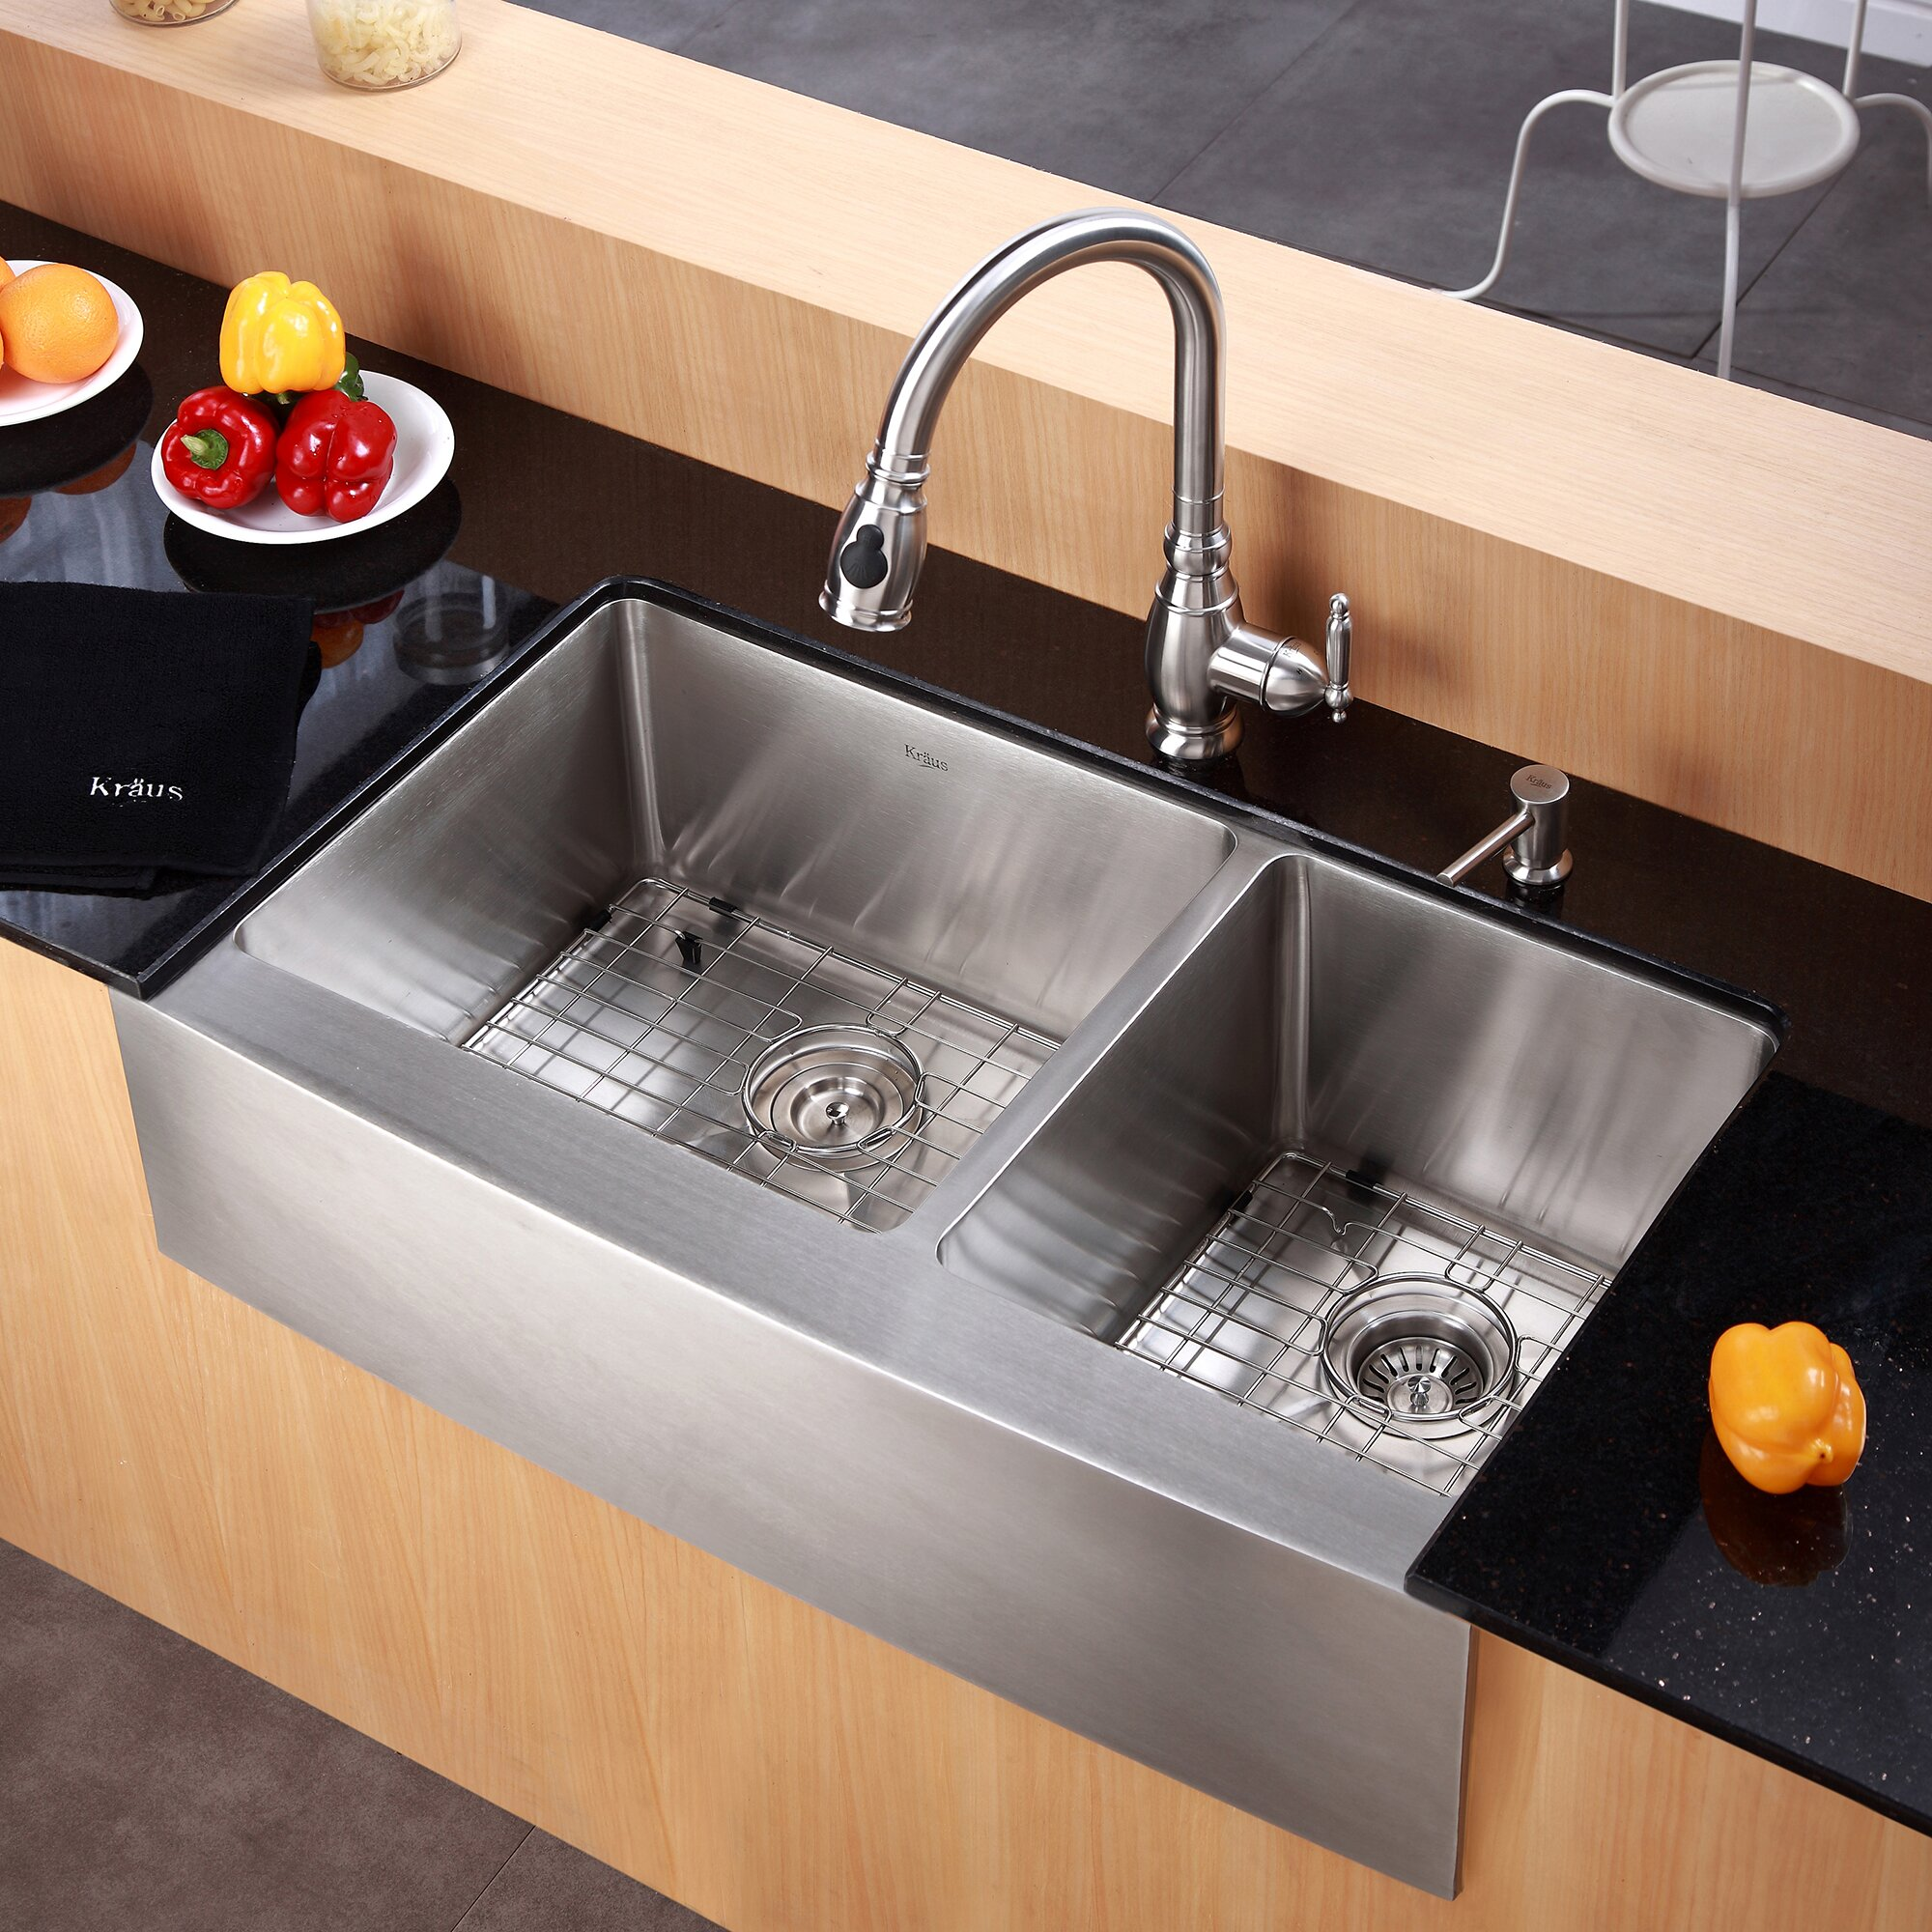 36 Inch Kitchen Sink : Kraus-Farmhouse-36-70-30-Double-Bowl-Kitchen-Sink-KHF-203-36.jpg